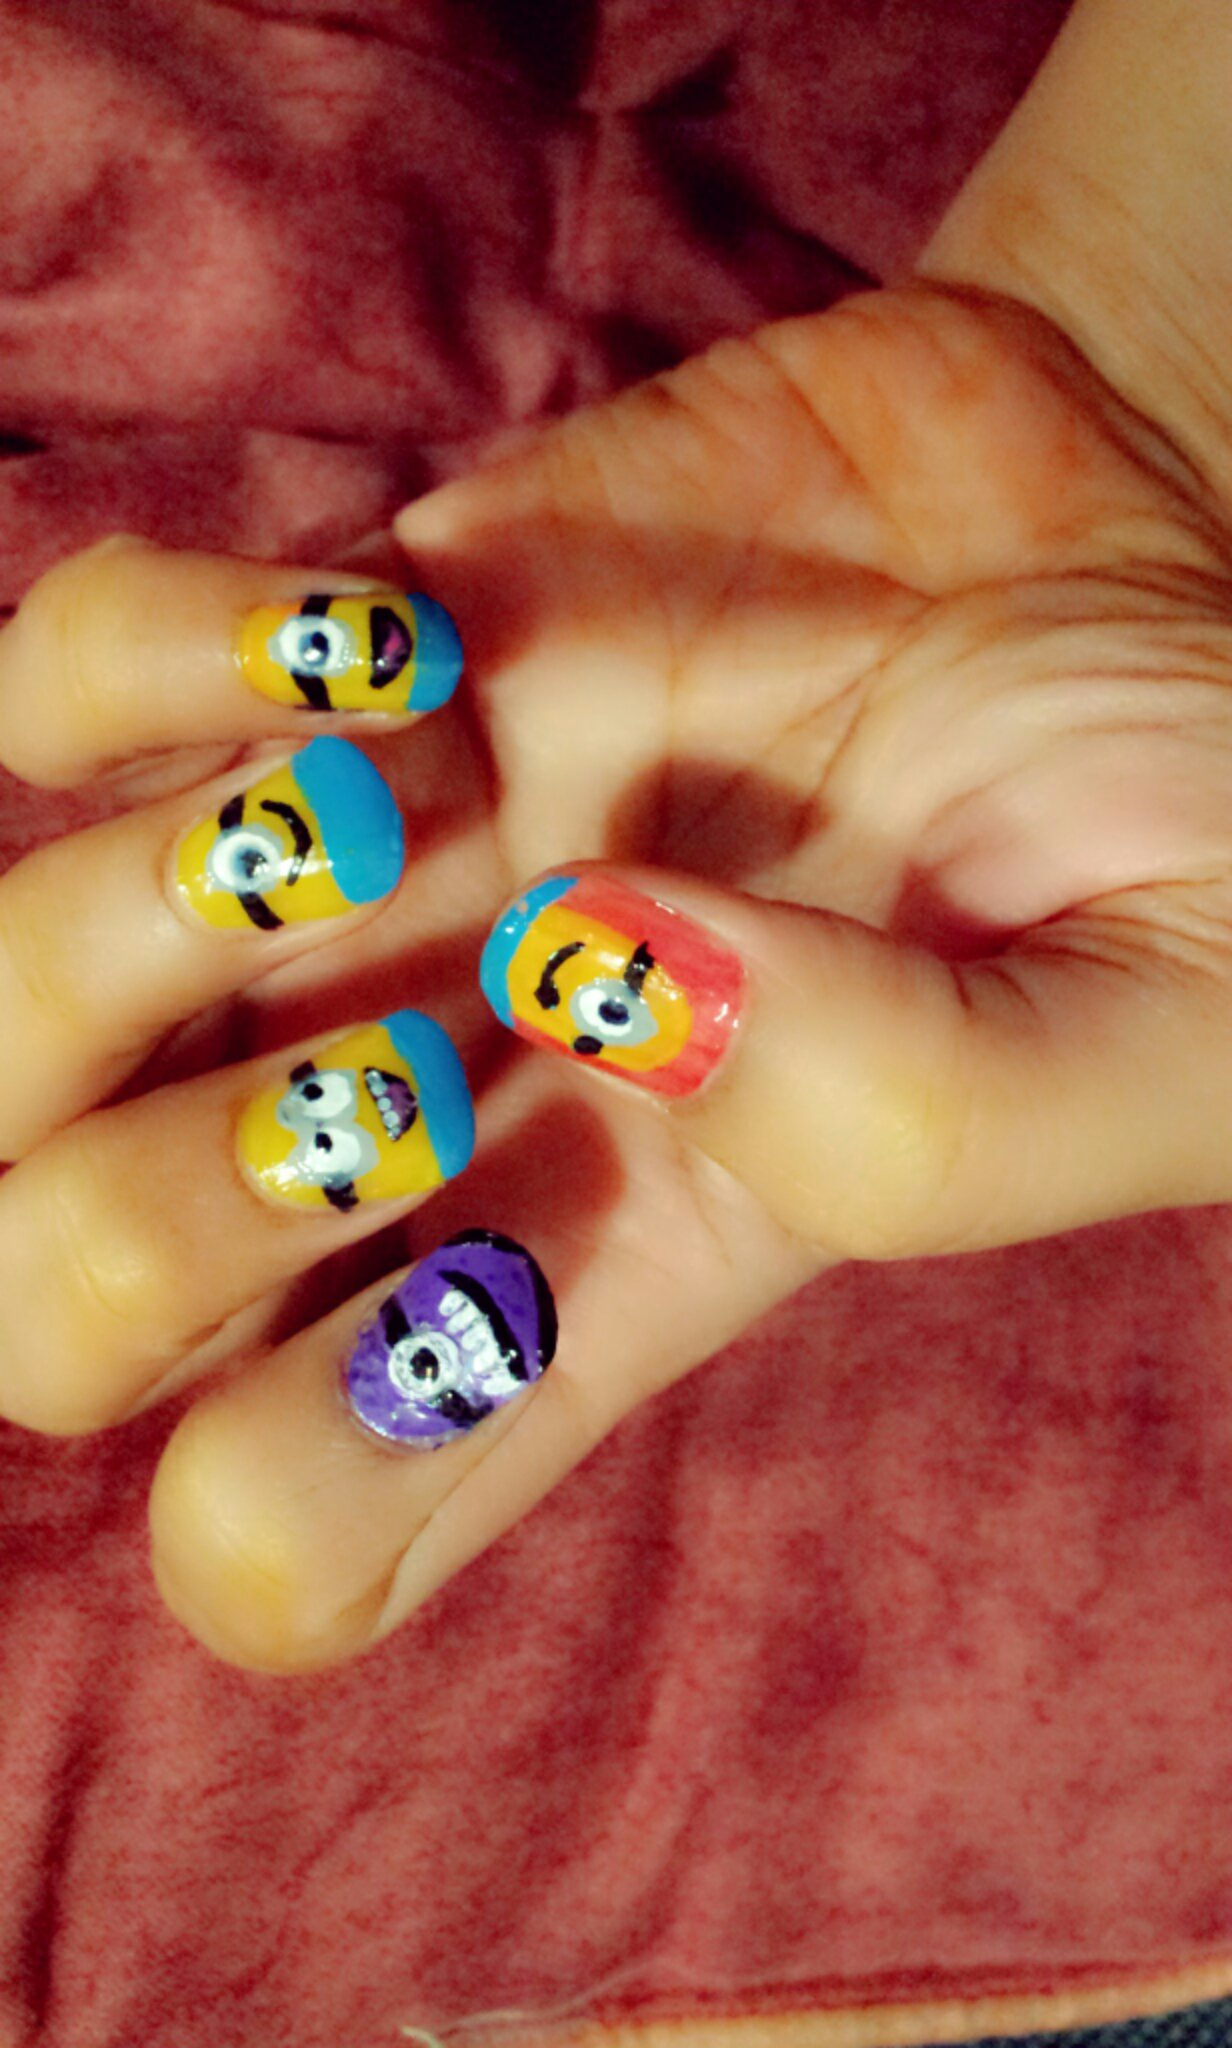 NAIL ART : Despicable Me 2 Minion Nails | Q8 Mango People